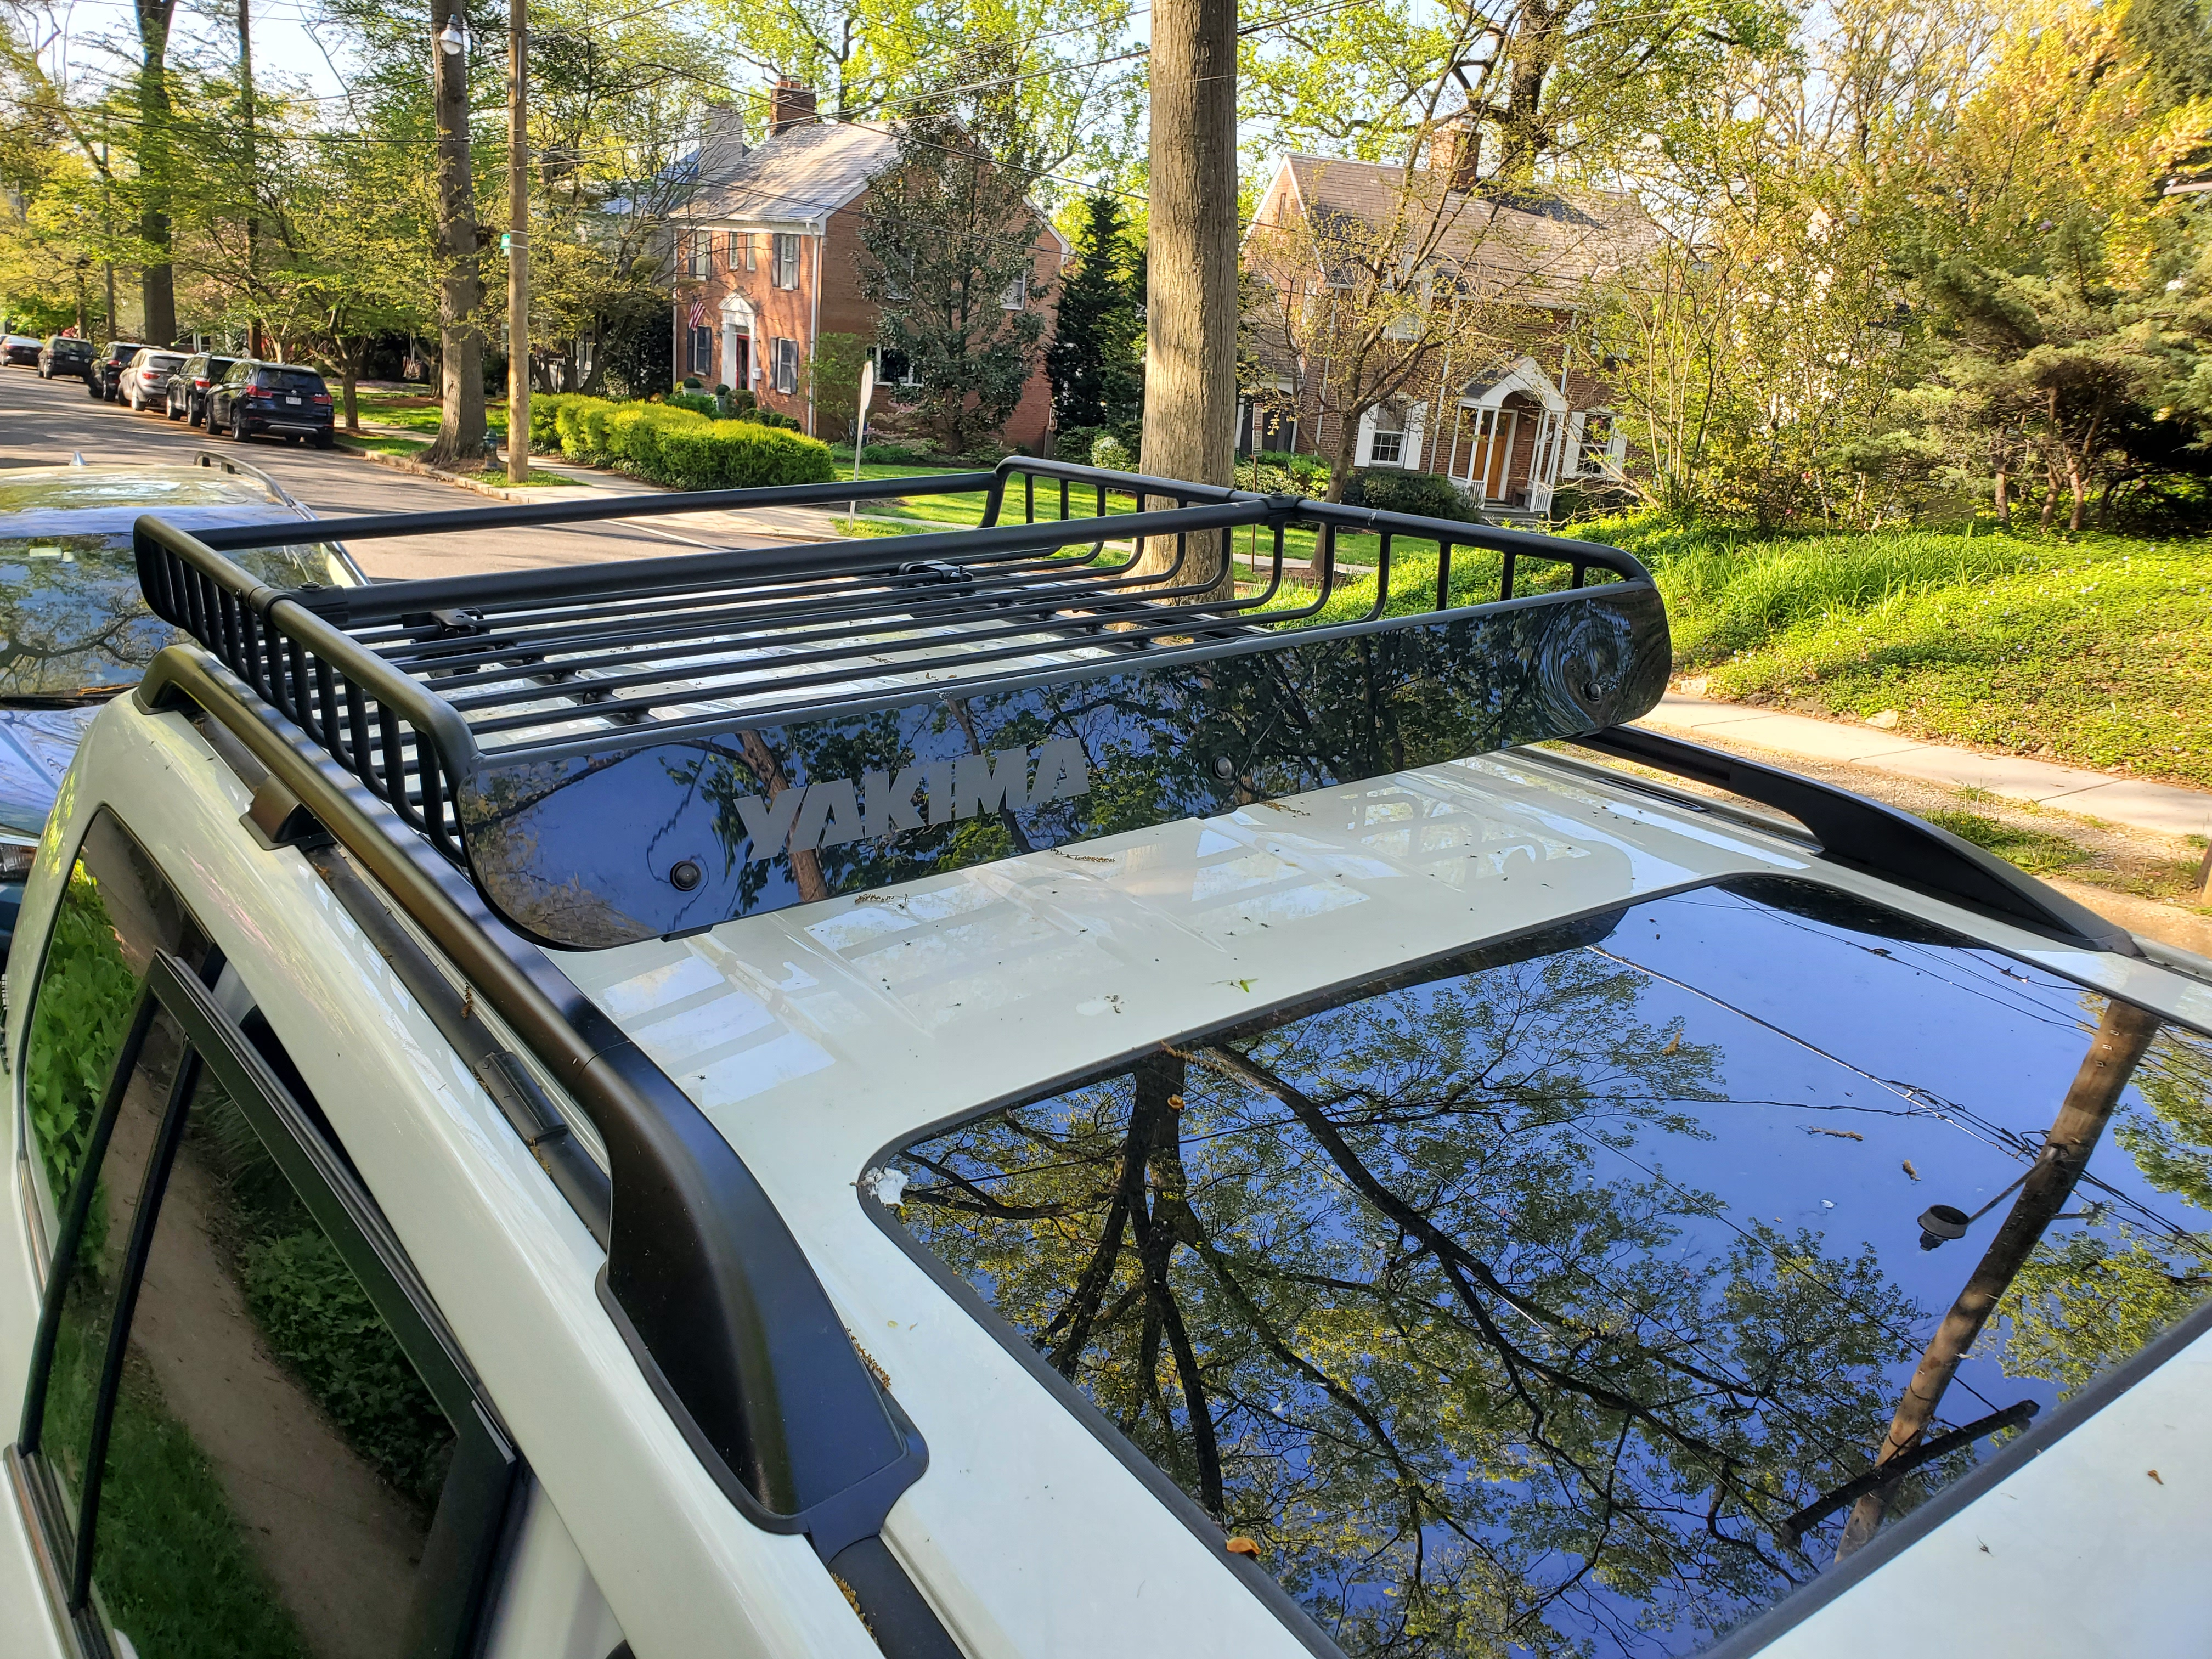 Heritage Edition Toyota Land Cruiser features a Yakima Roof Rack